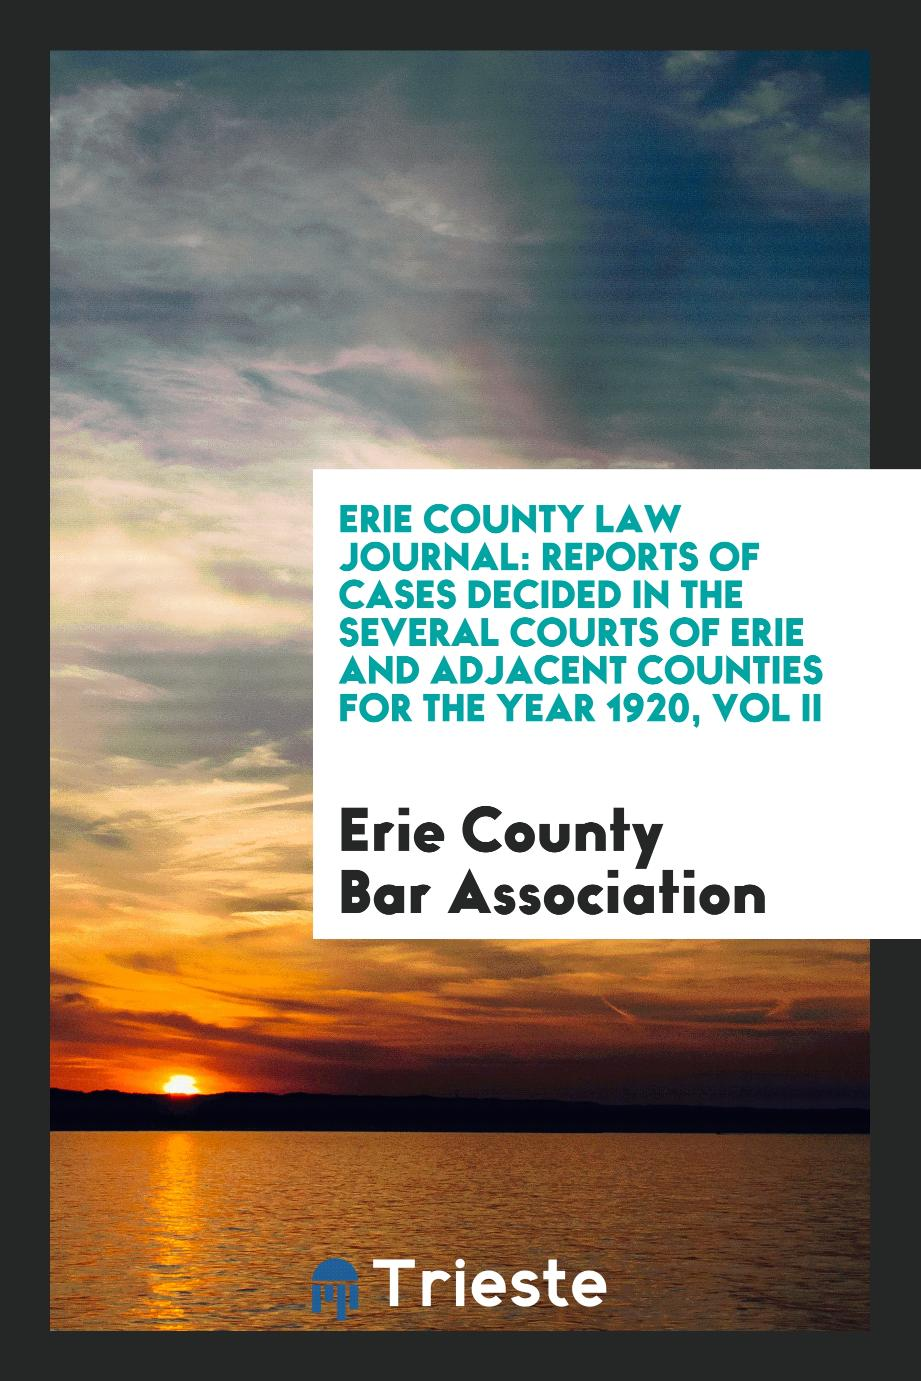 Erie County Law Journal: Reports of Cases Decided in the Several Courts of Erie and Adjacent Counties for the Year 1920, Vol II